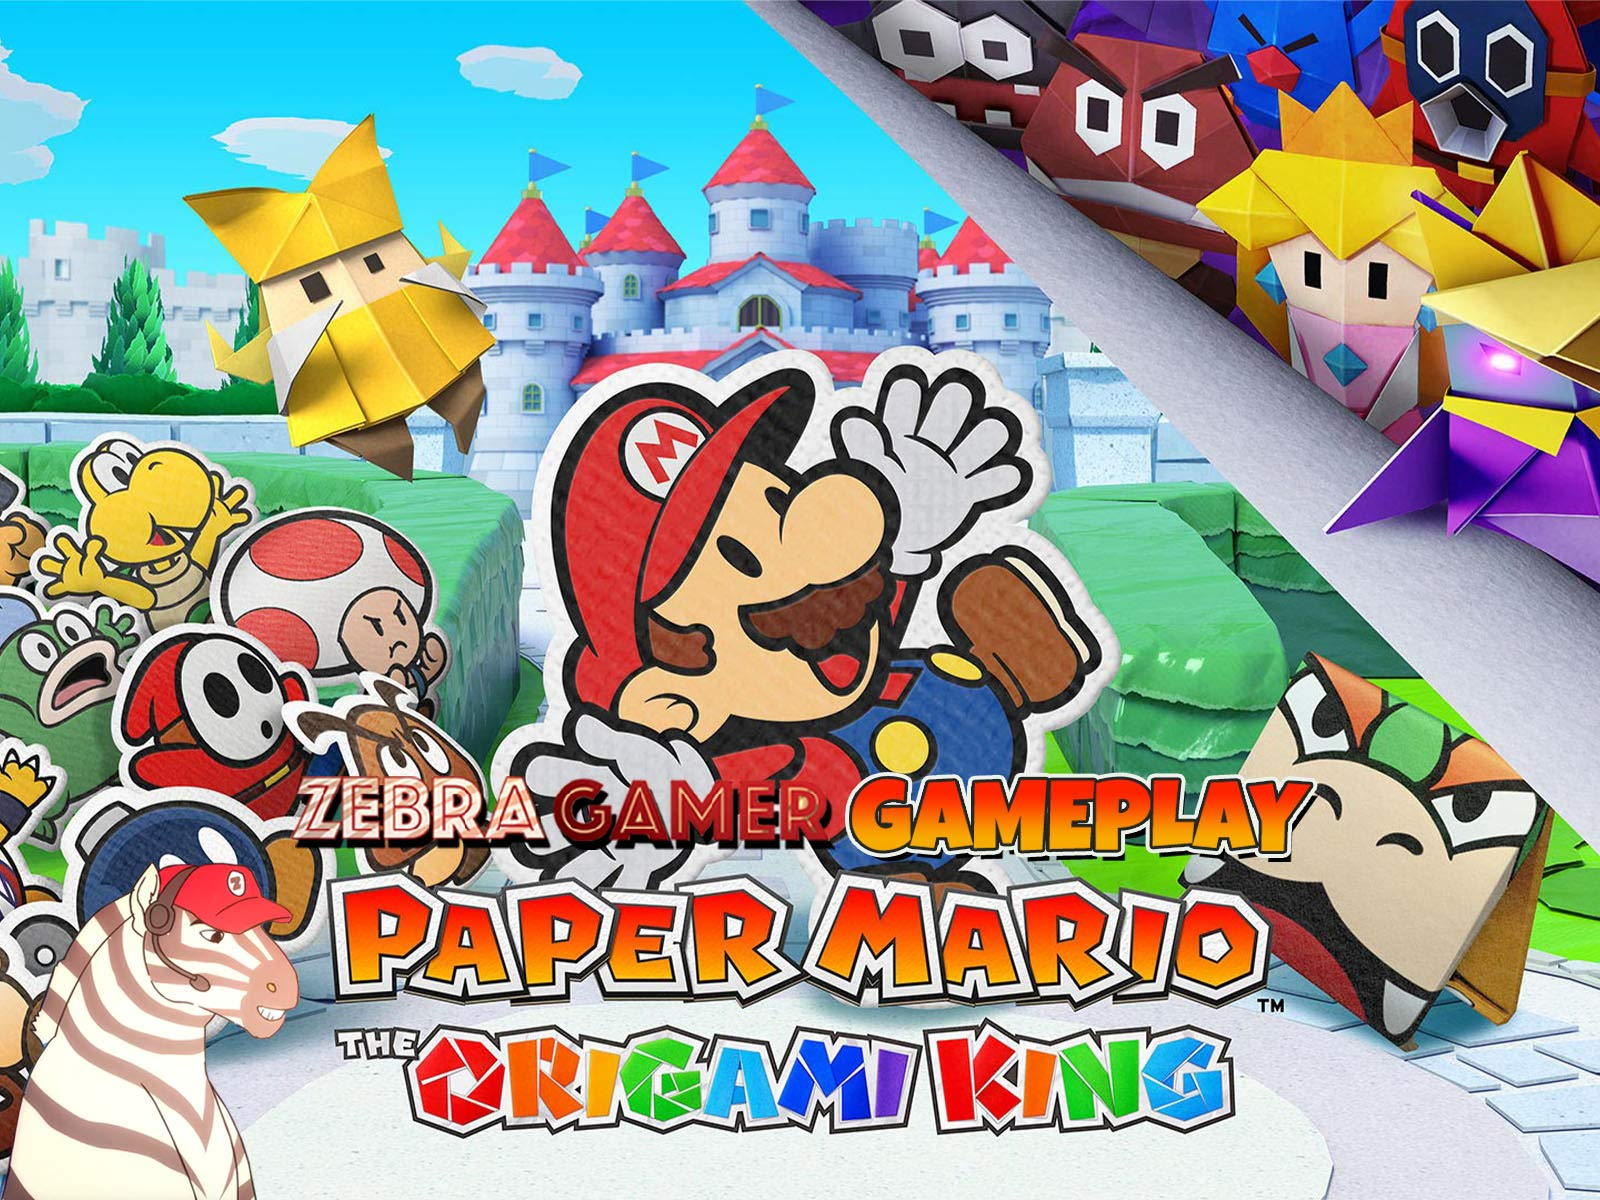 Clip: Paper Mario The Origami King Gameplay - Zebra Gamer - Season 1